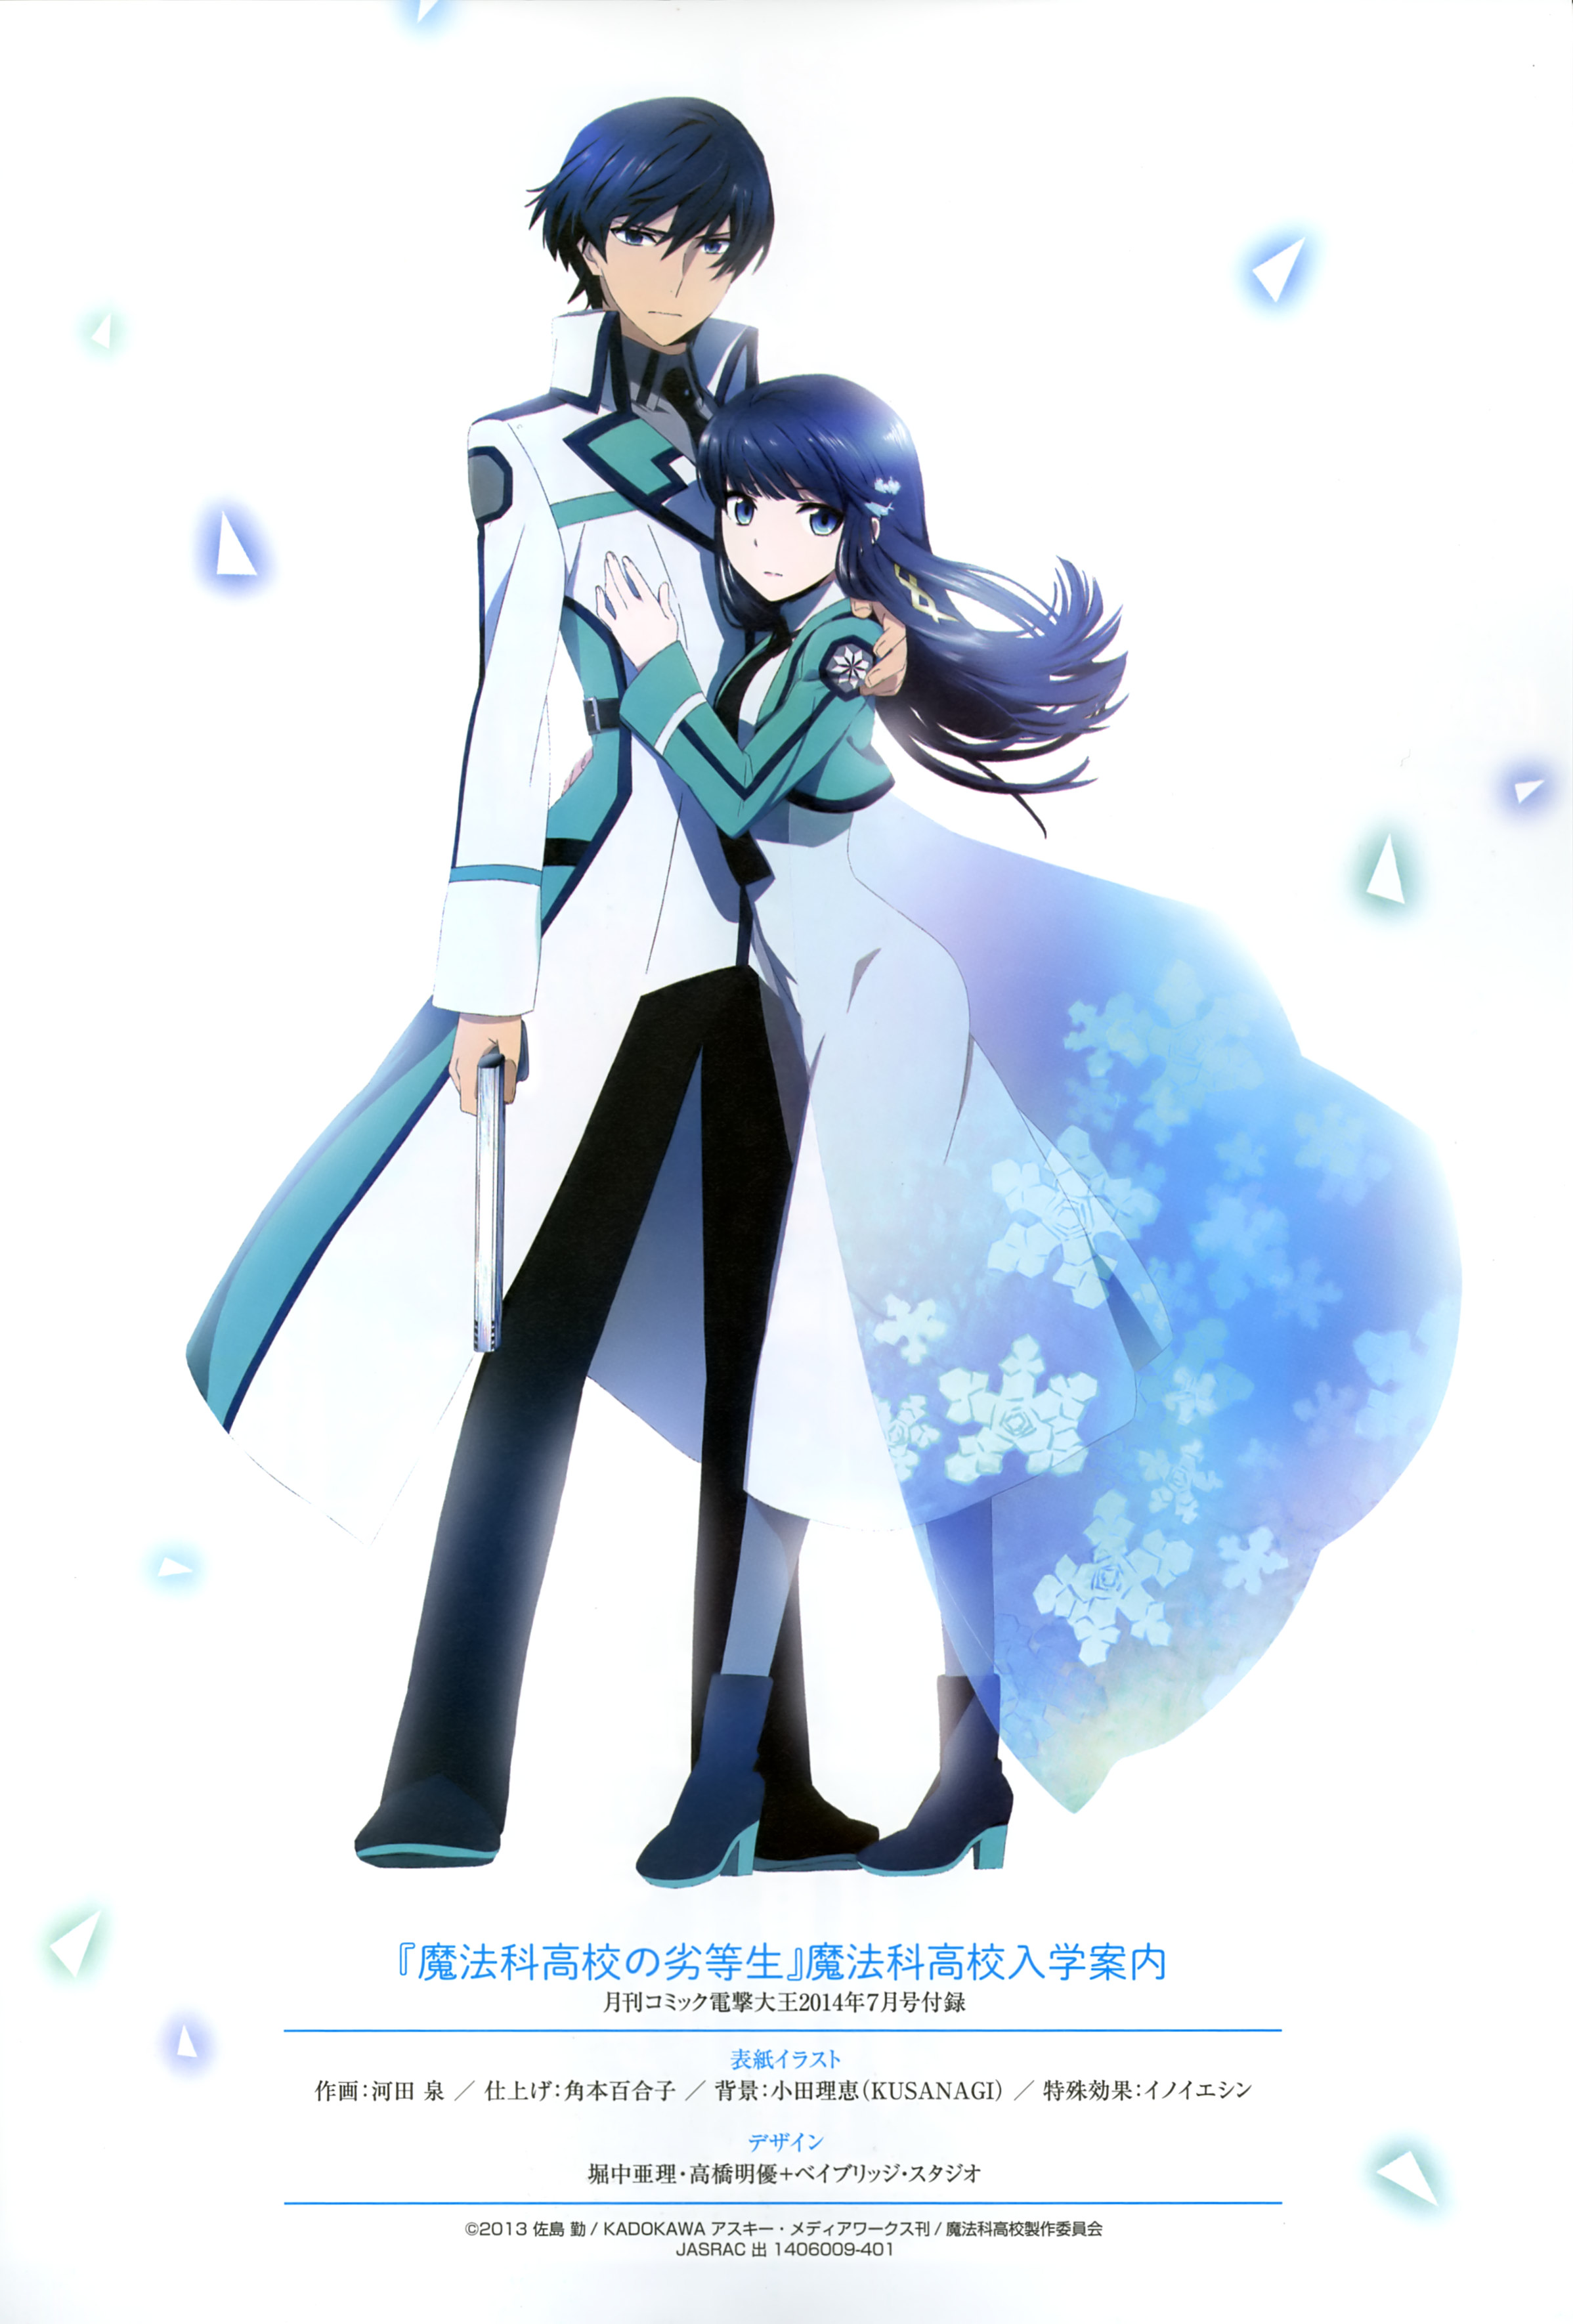 Mahouka Koukou No Rettousei The Irregular At Magic High School